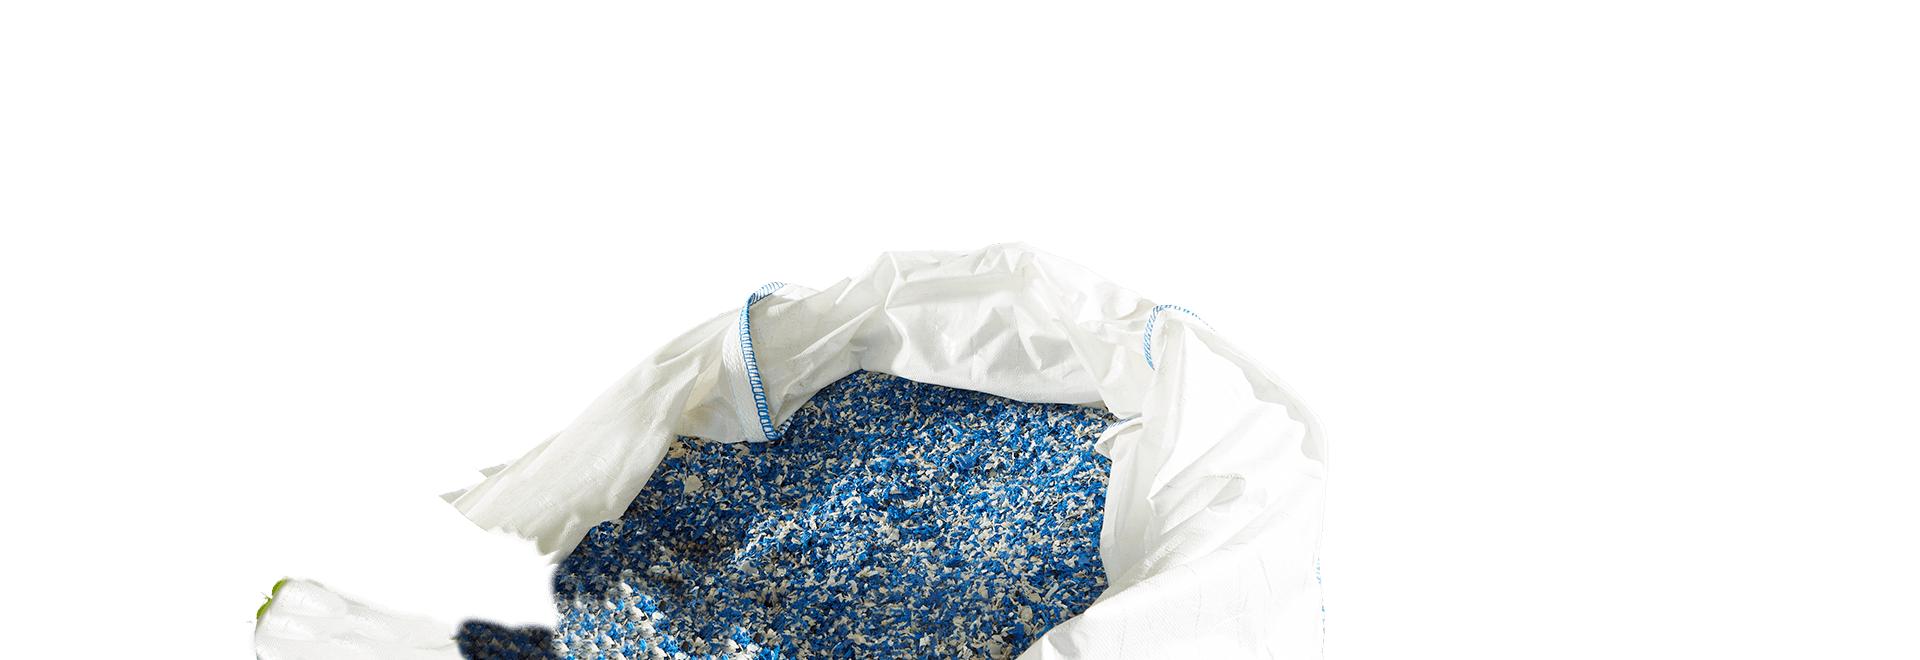 WasteCare: Taking the hazard out of waste